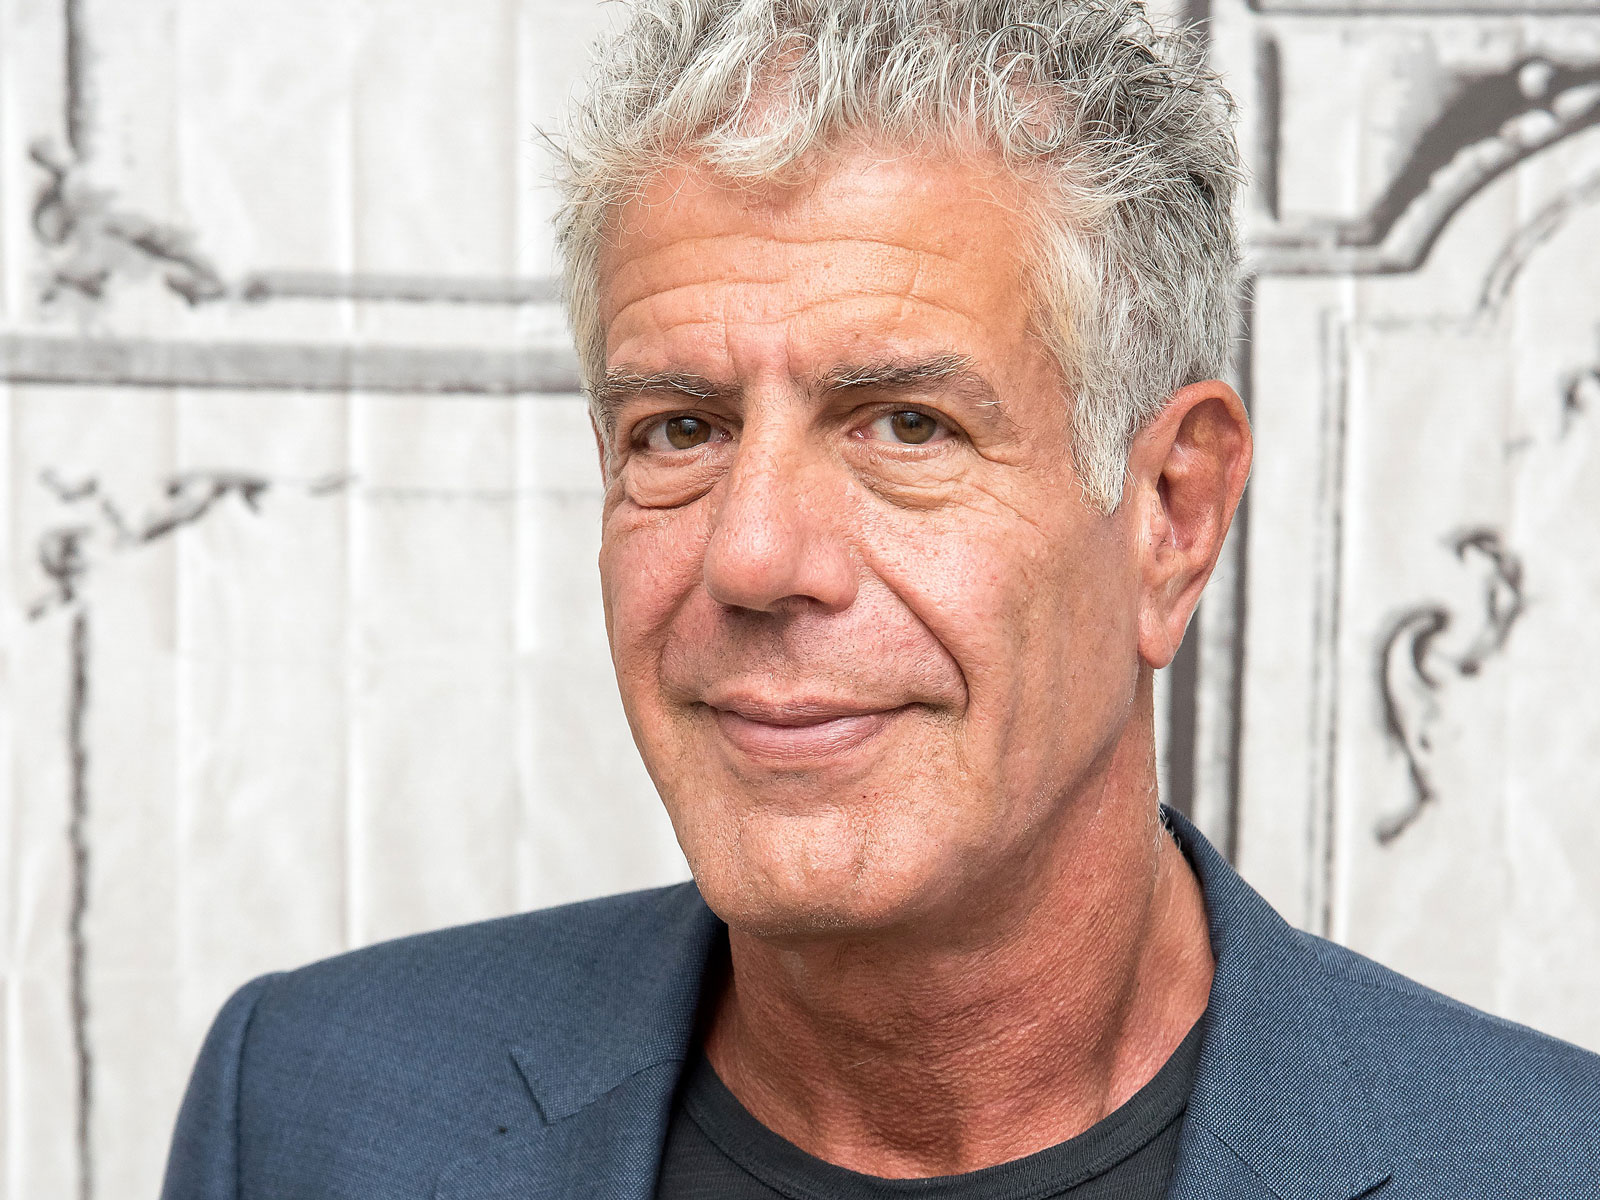 bourdain-auction-FT-BLOG1119.jpg